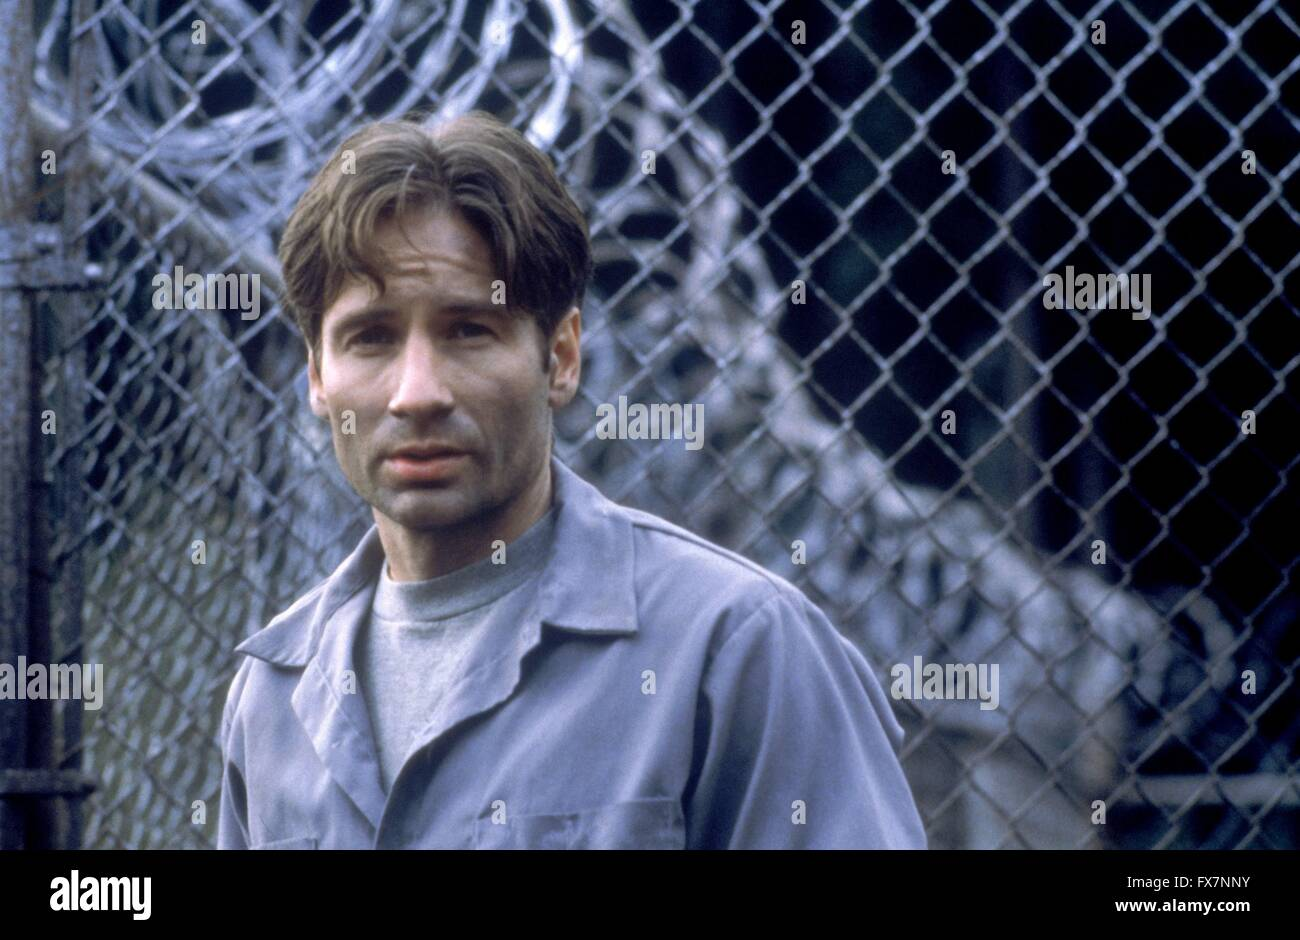 The X Files TV Series 1993 - 2002 USA 1996 Season 4 Created by Chris Carter David Duchovny - Stock Image